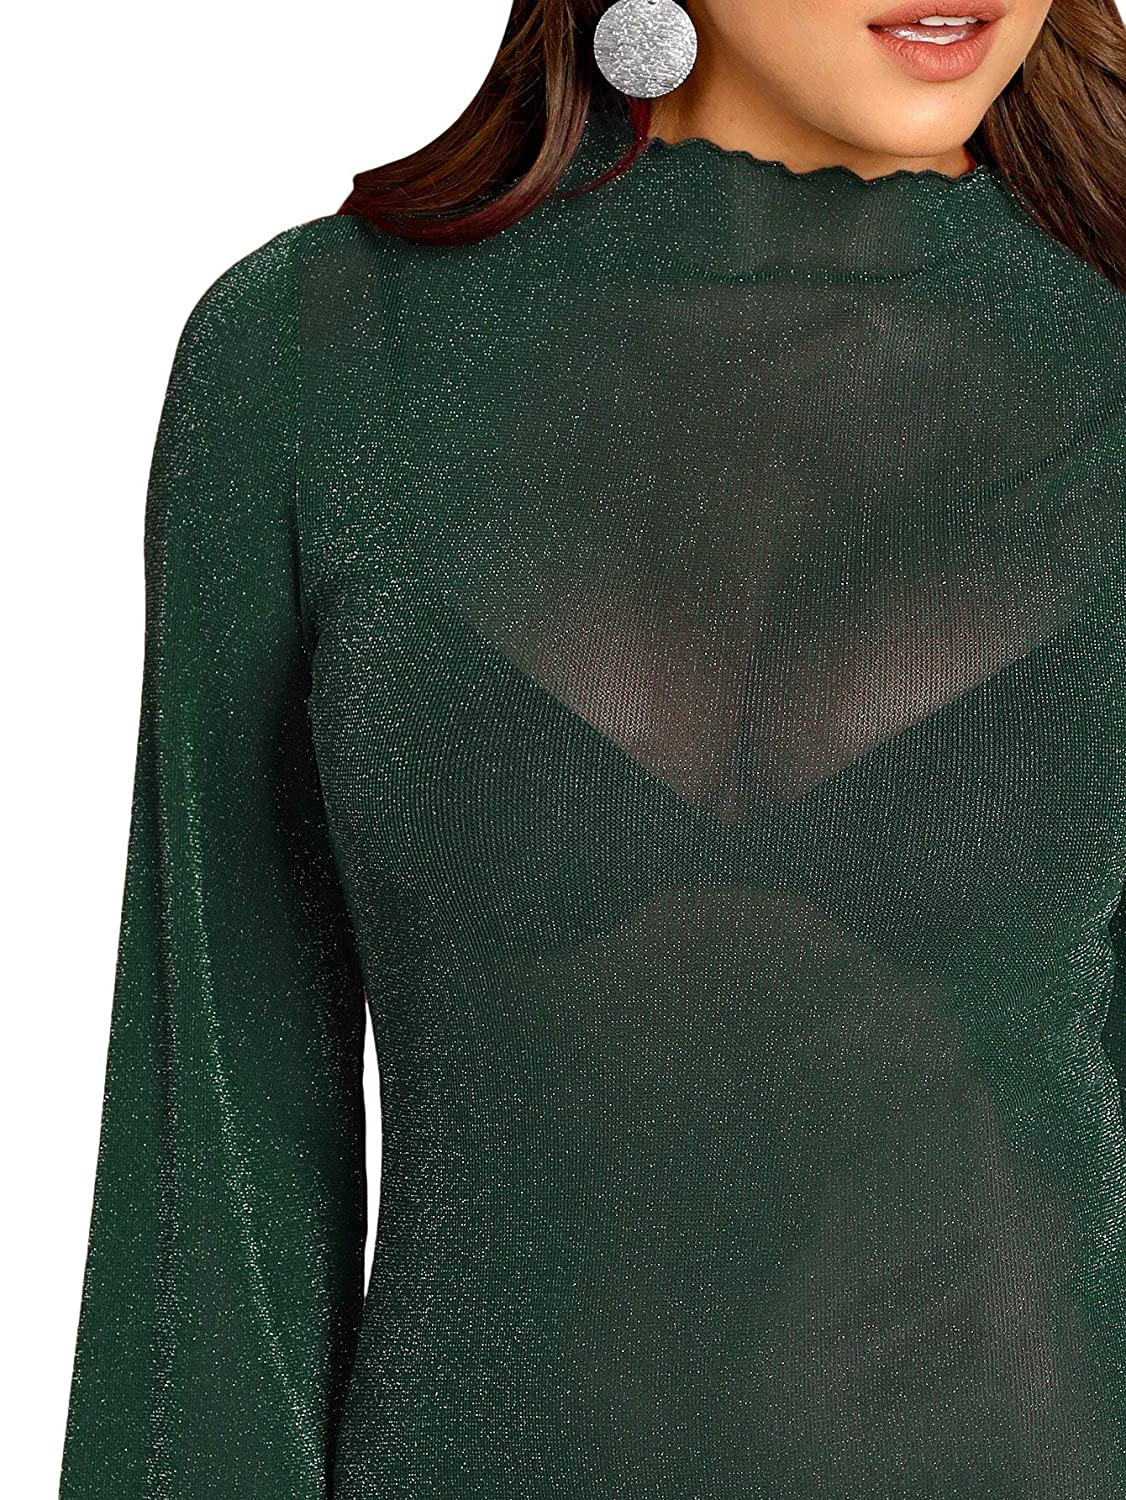 MAKEMECHIC Womens Lantern Sleeve Mock Neck Glitter See Through Sheer Bodysuit